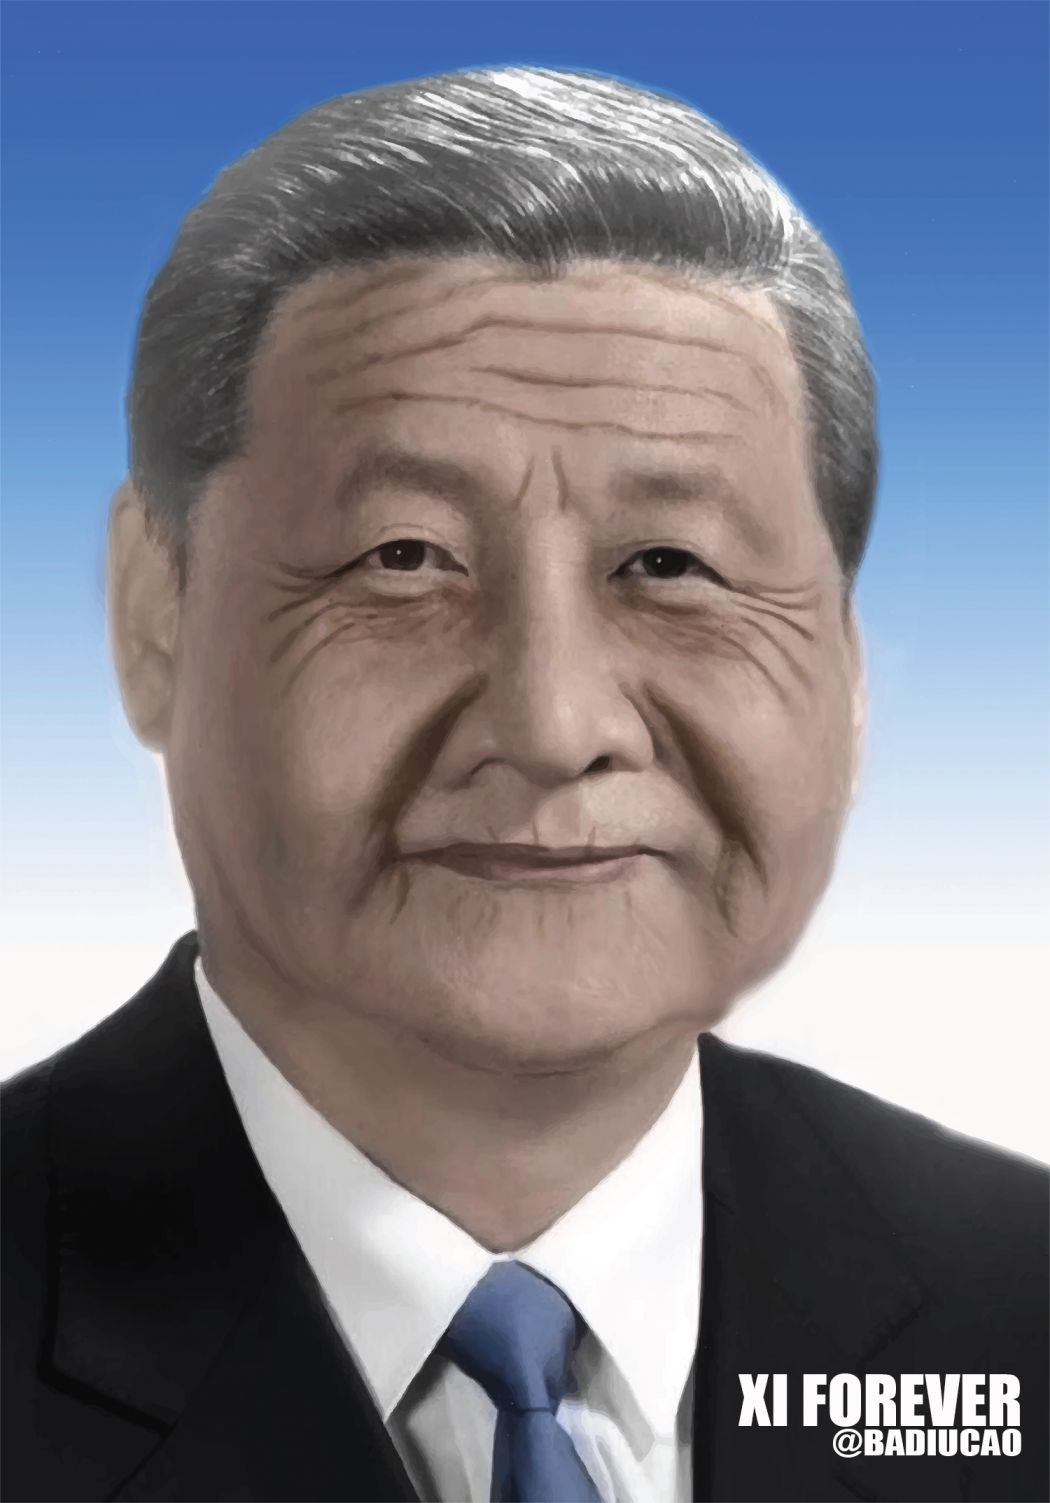 old elderly xi jinping forever